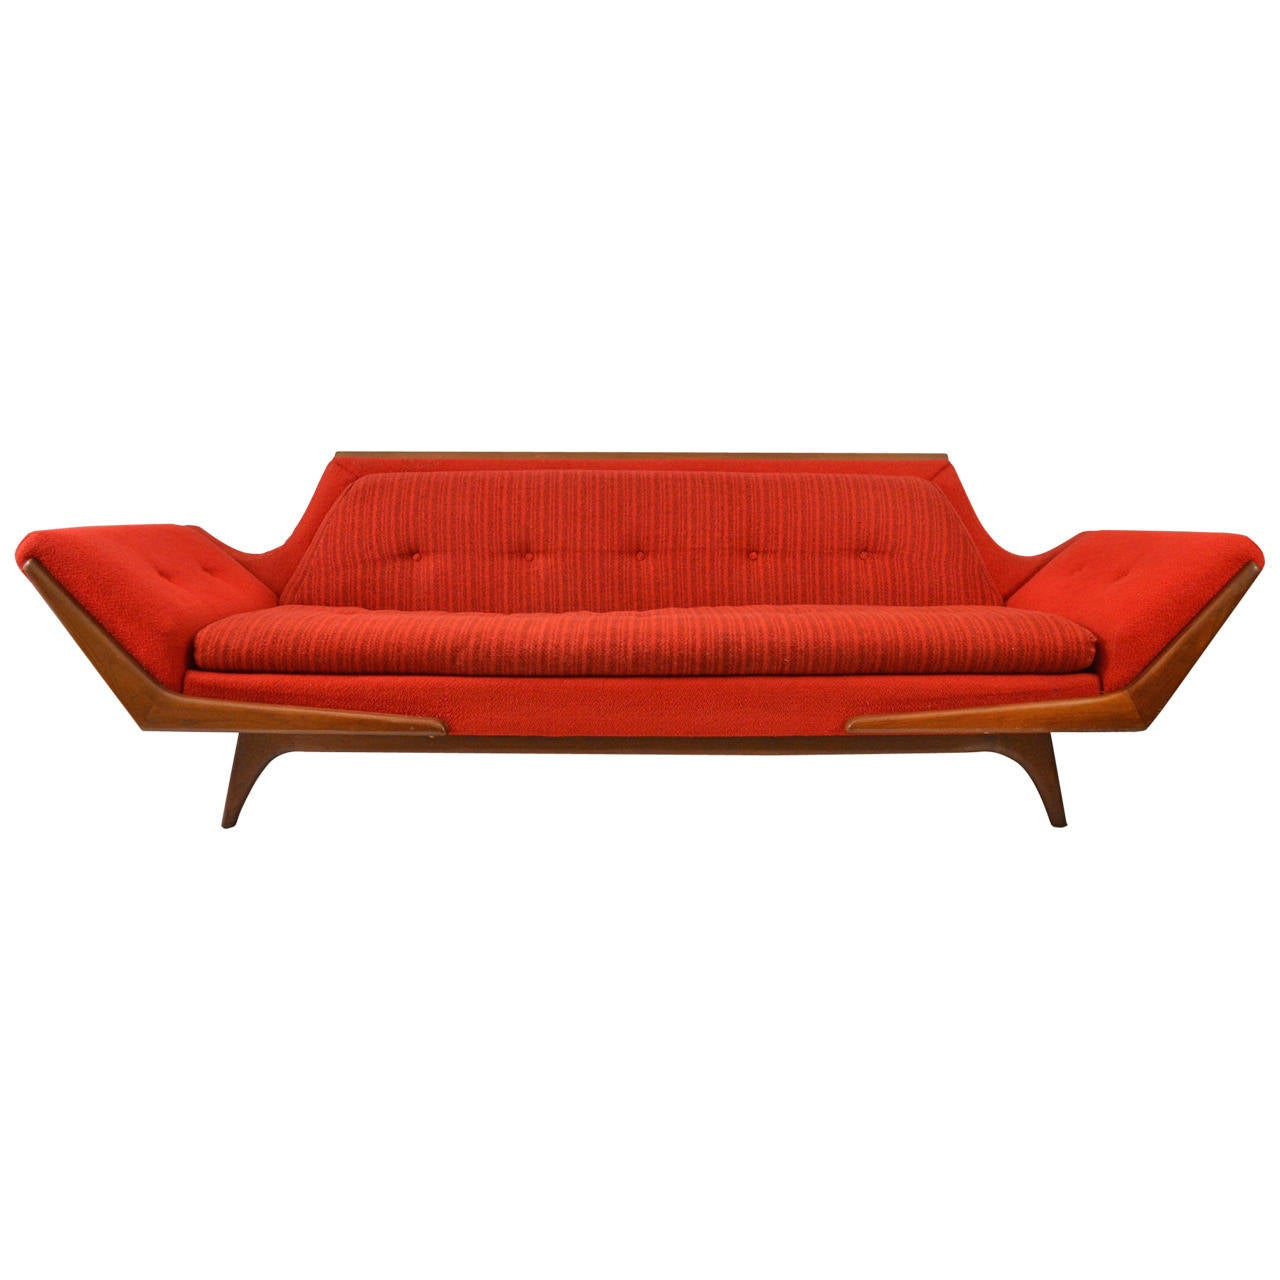 Gondola Sofa By Rowe At 1stdibs